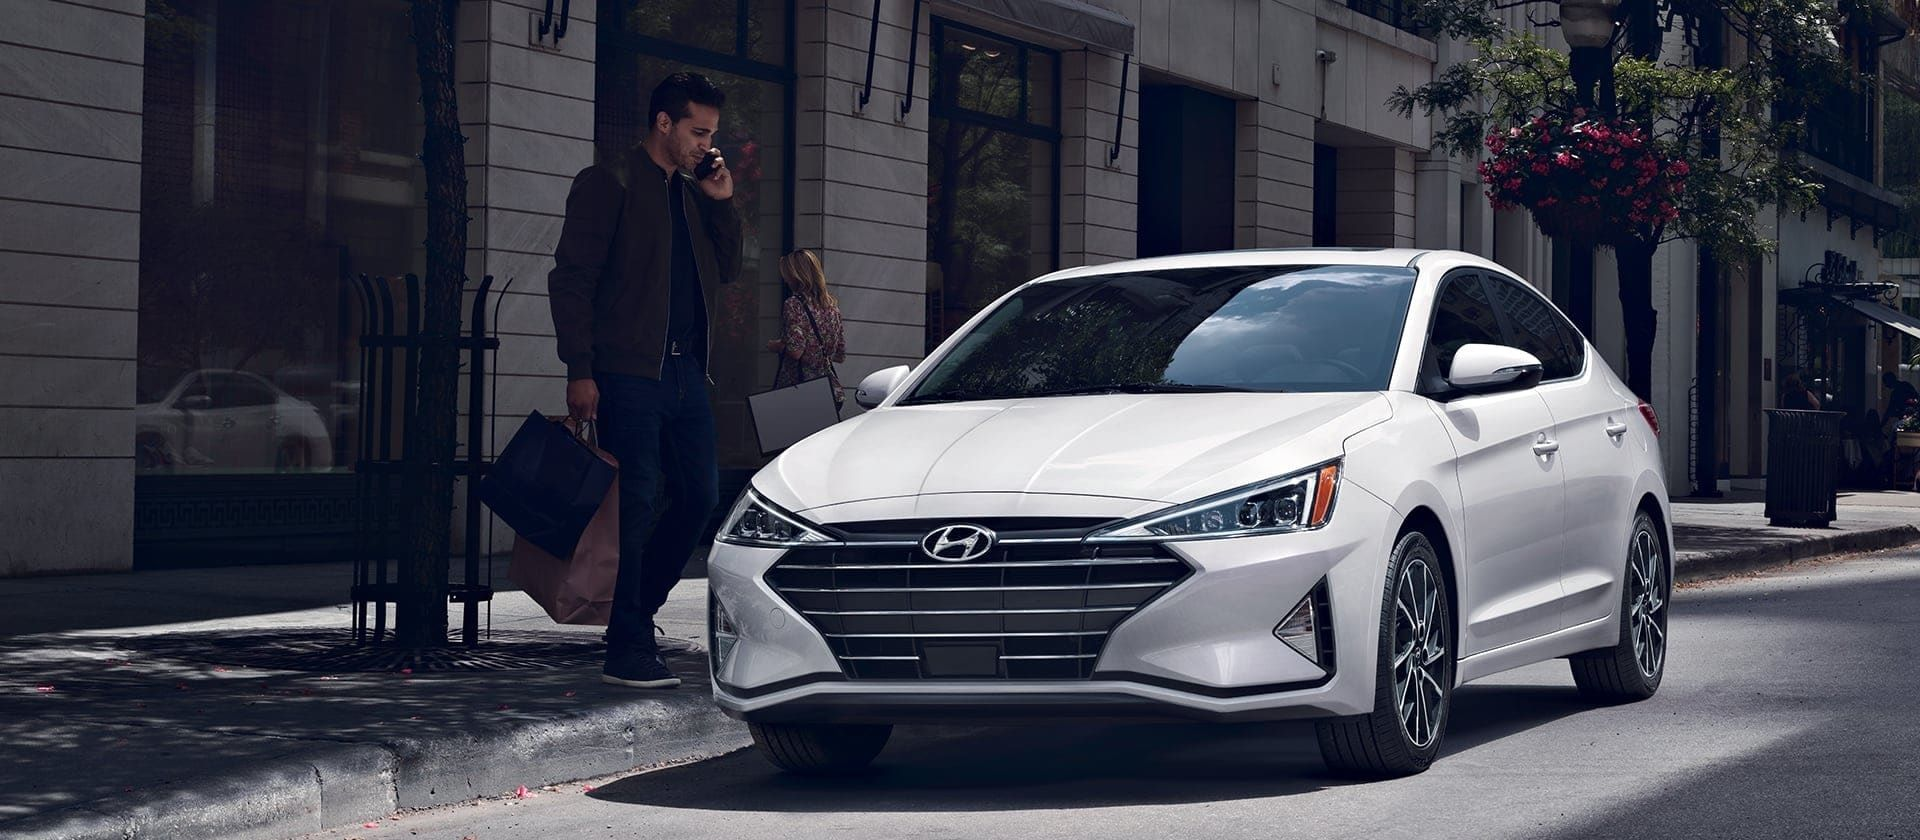 2019 Hyundai Elantra Leasing near College Park, MD